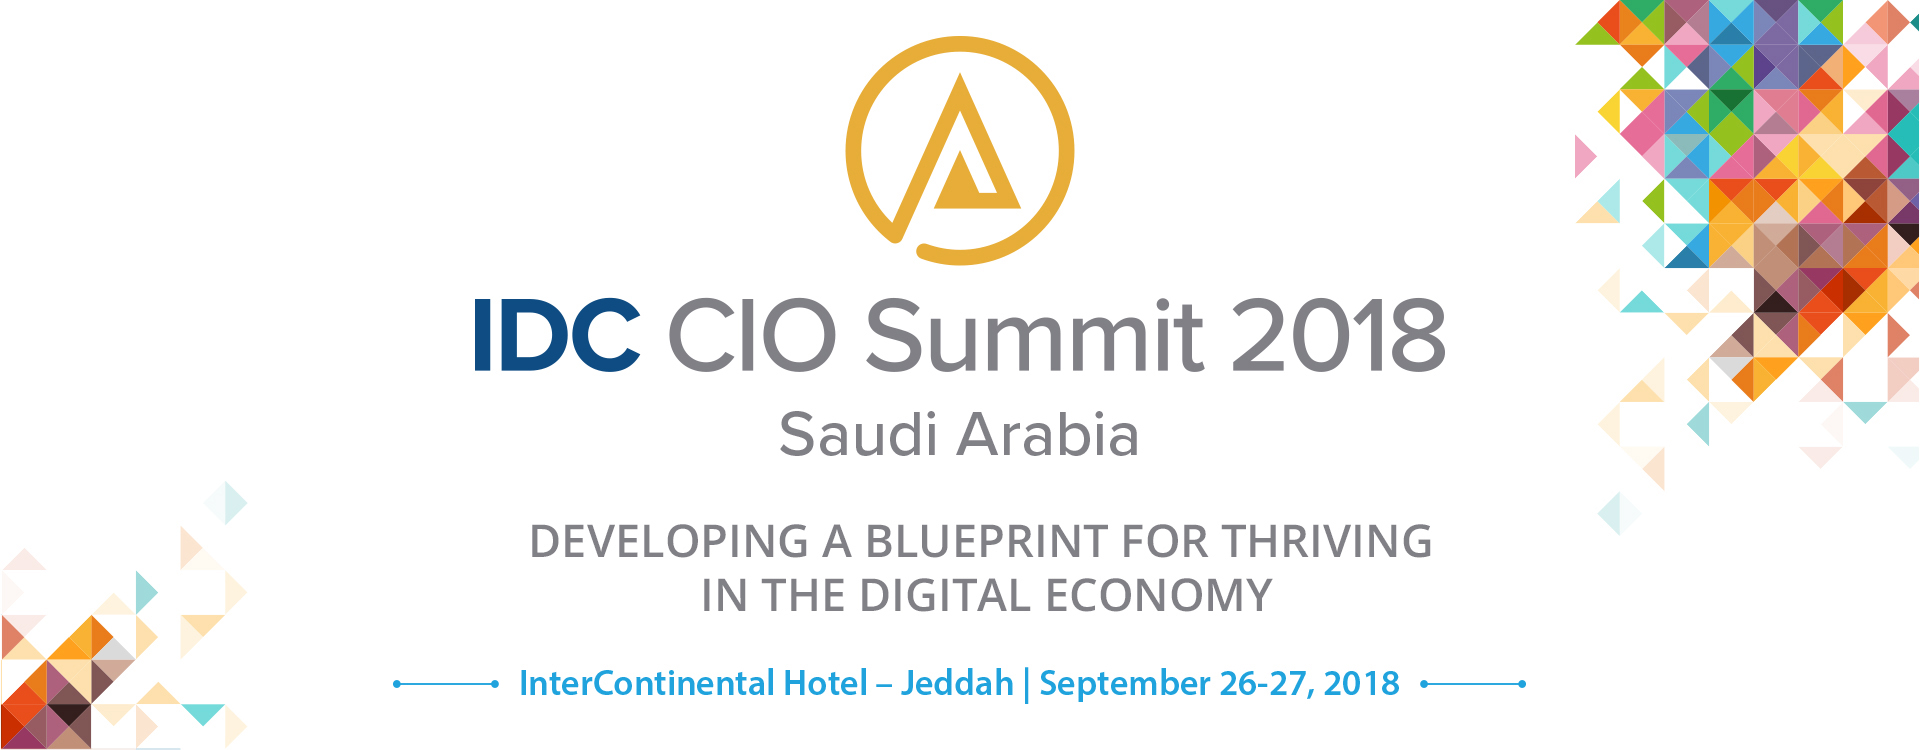 South africa idc cio summit 2018 idcs cio summit series has been at the forefront of ict thought leadership across the middle east africa and turkey since its inception in 2008 malvernweather Gallery